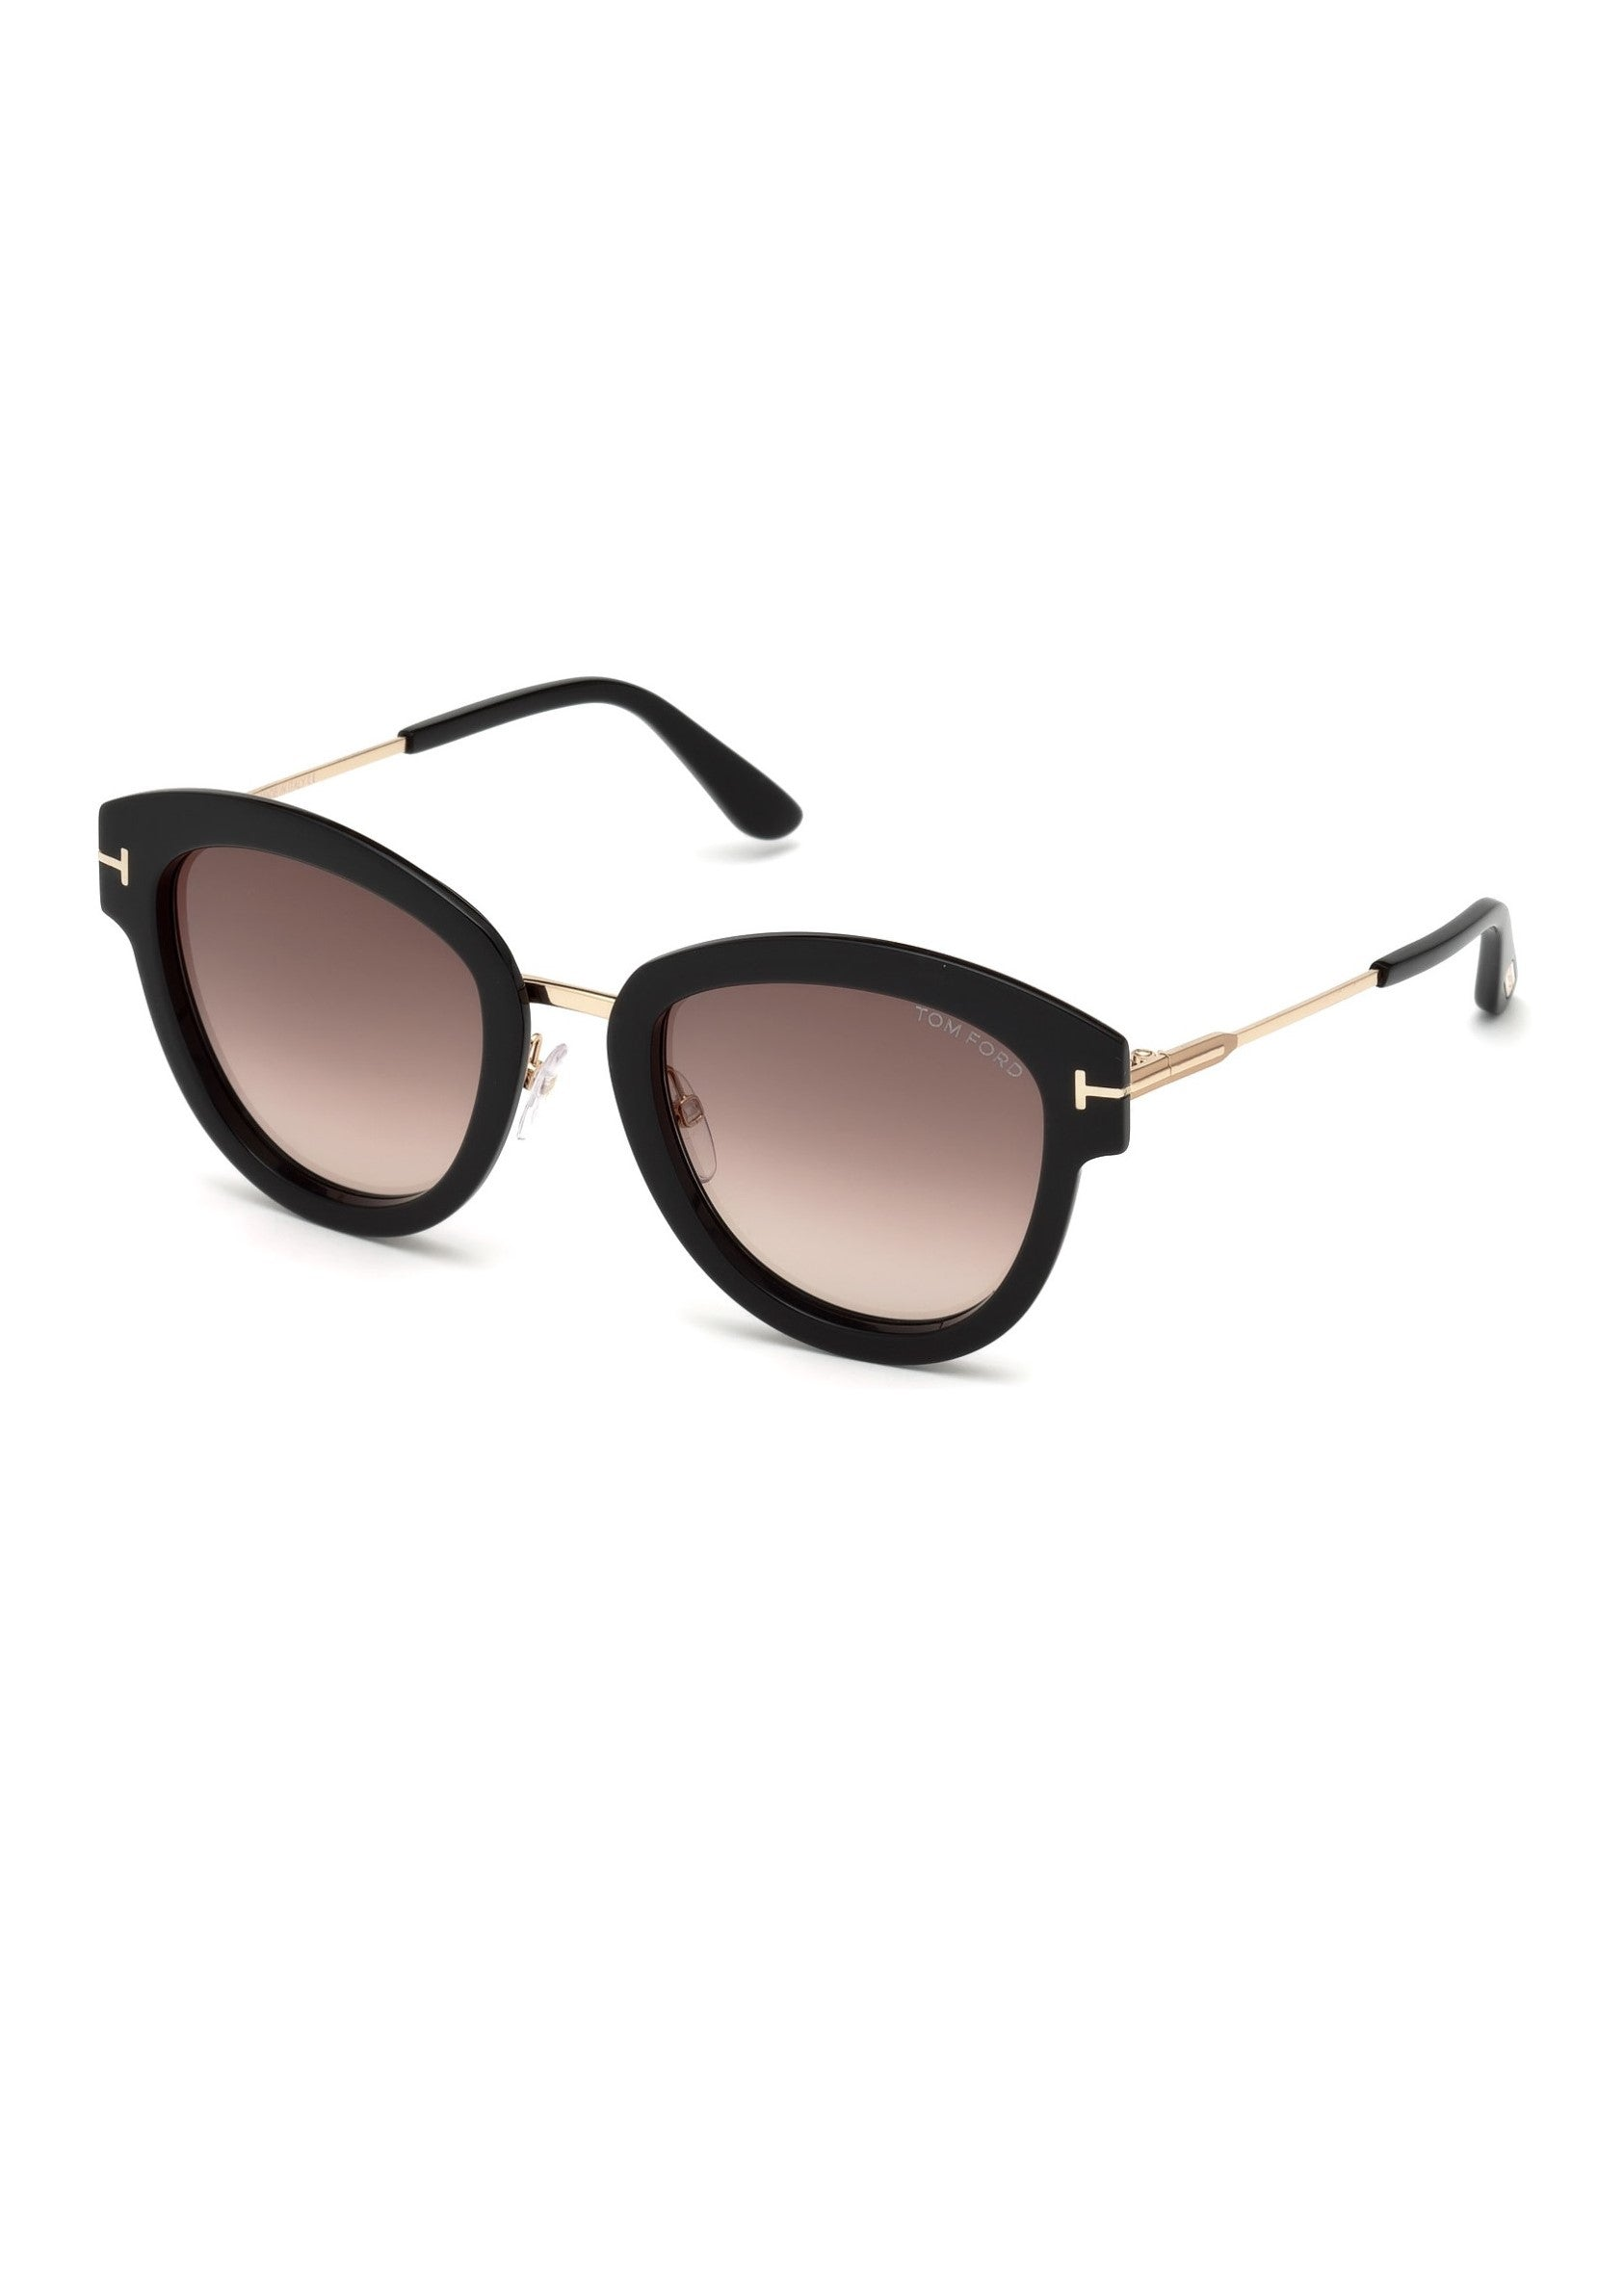 Tom Ford Mia sunglasses in shiny black